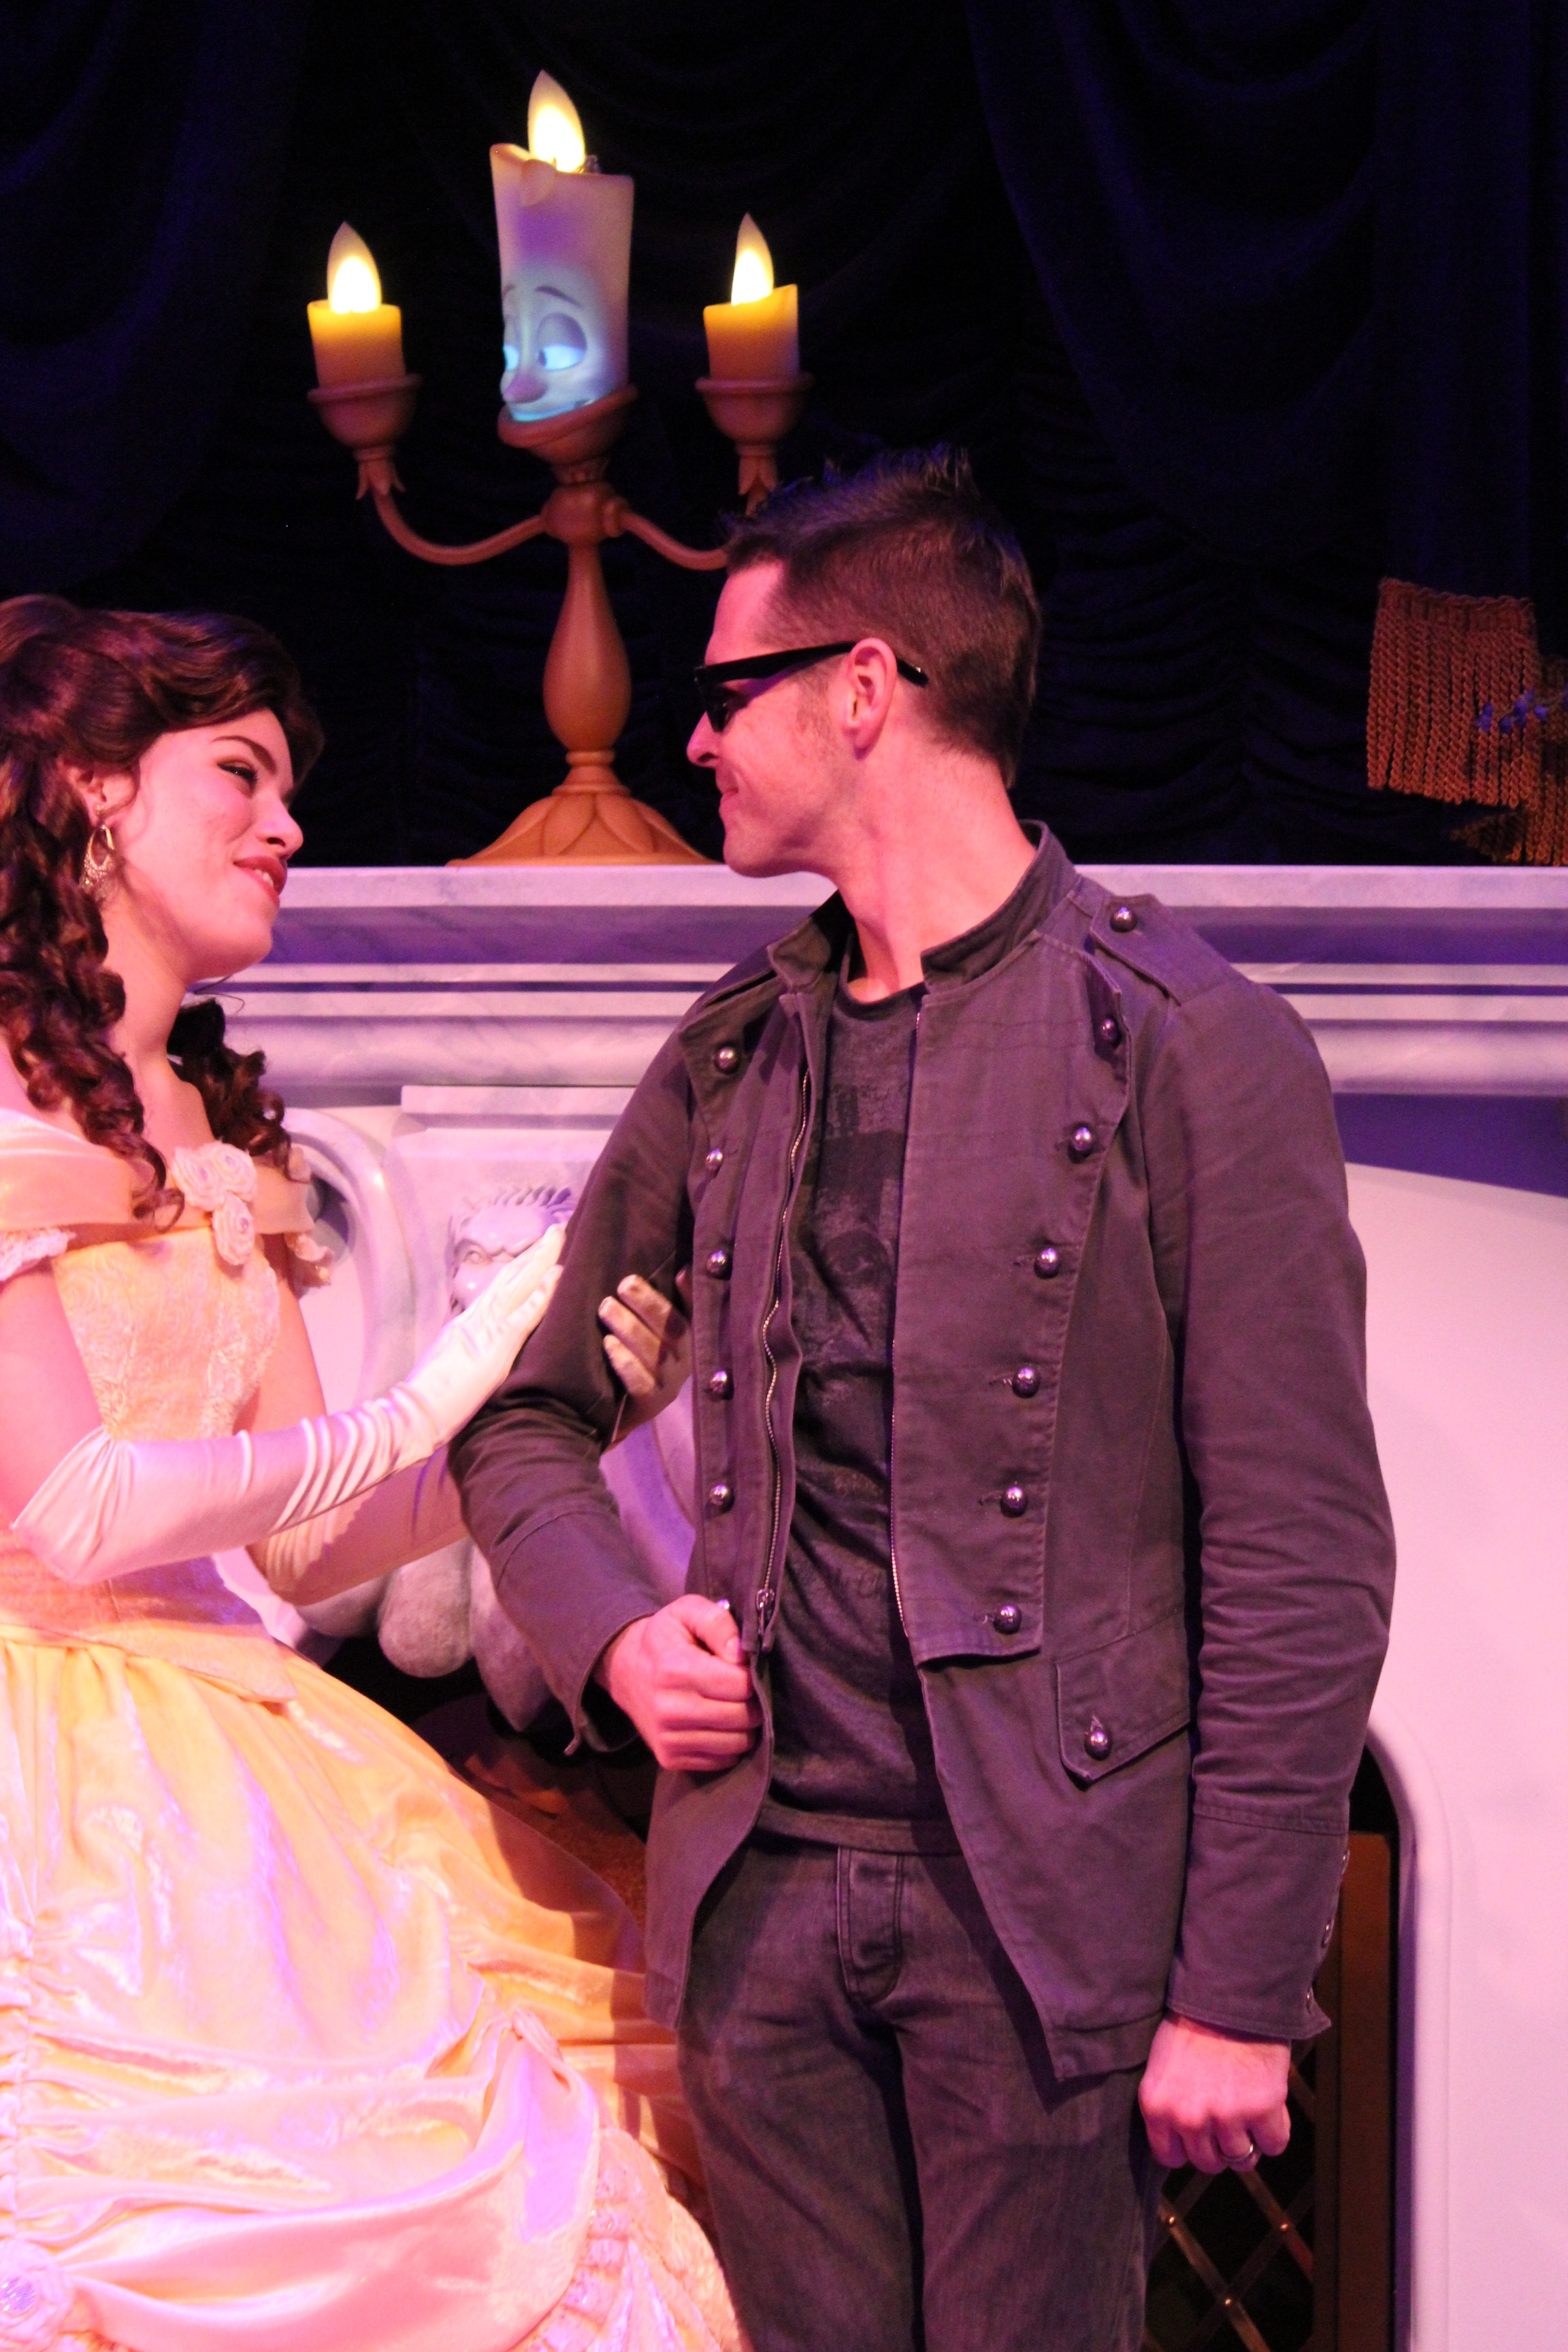 Look at the handsome prince with Belle!